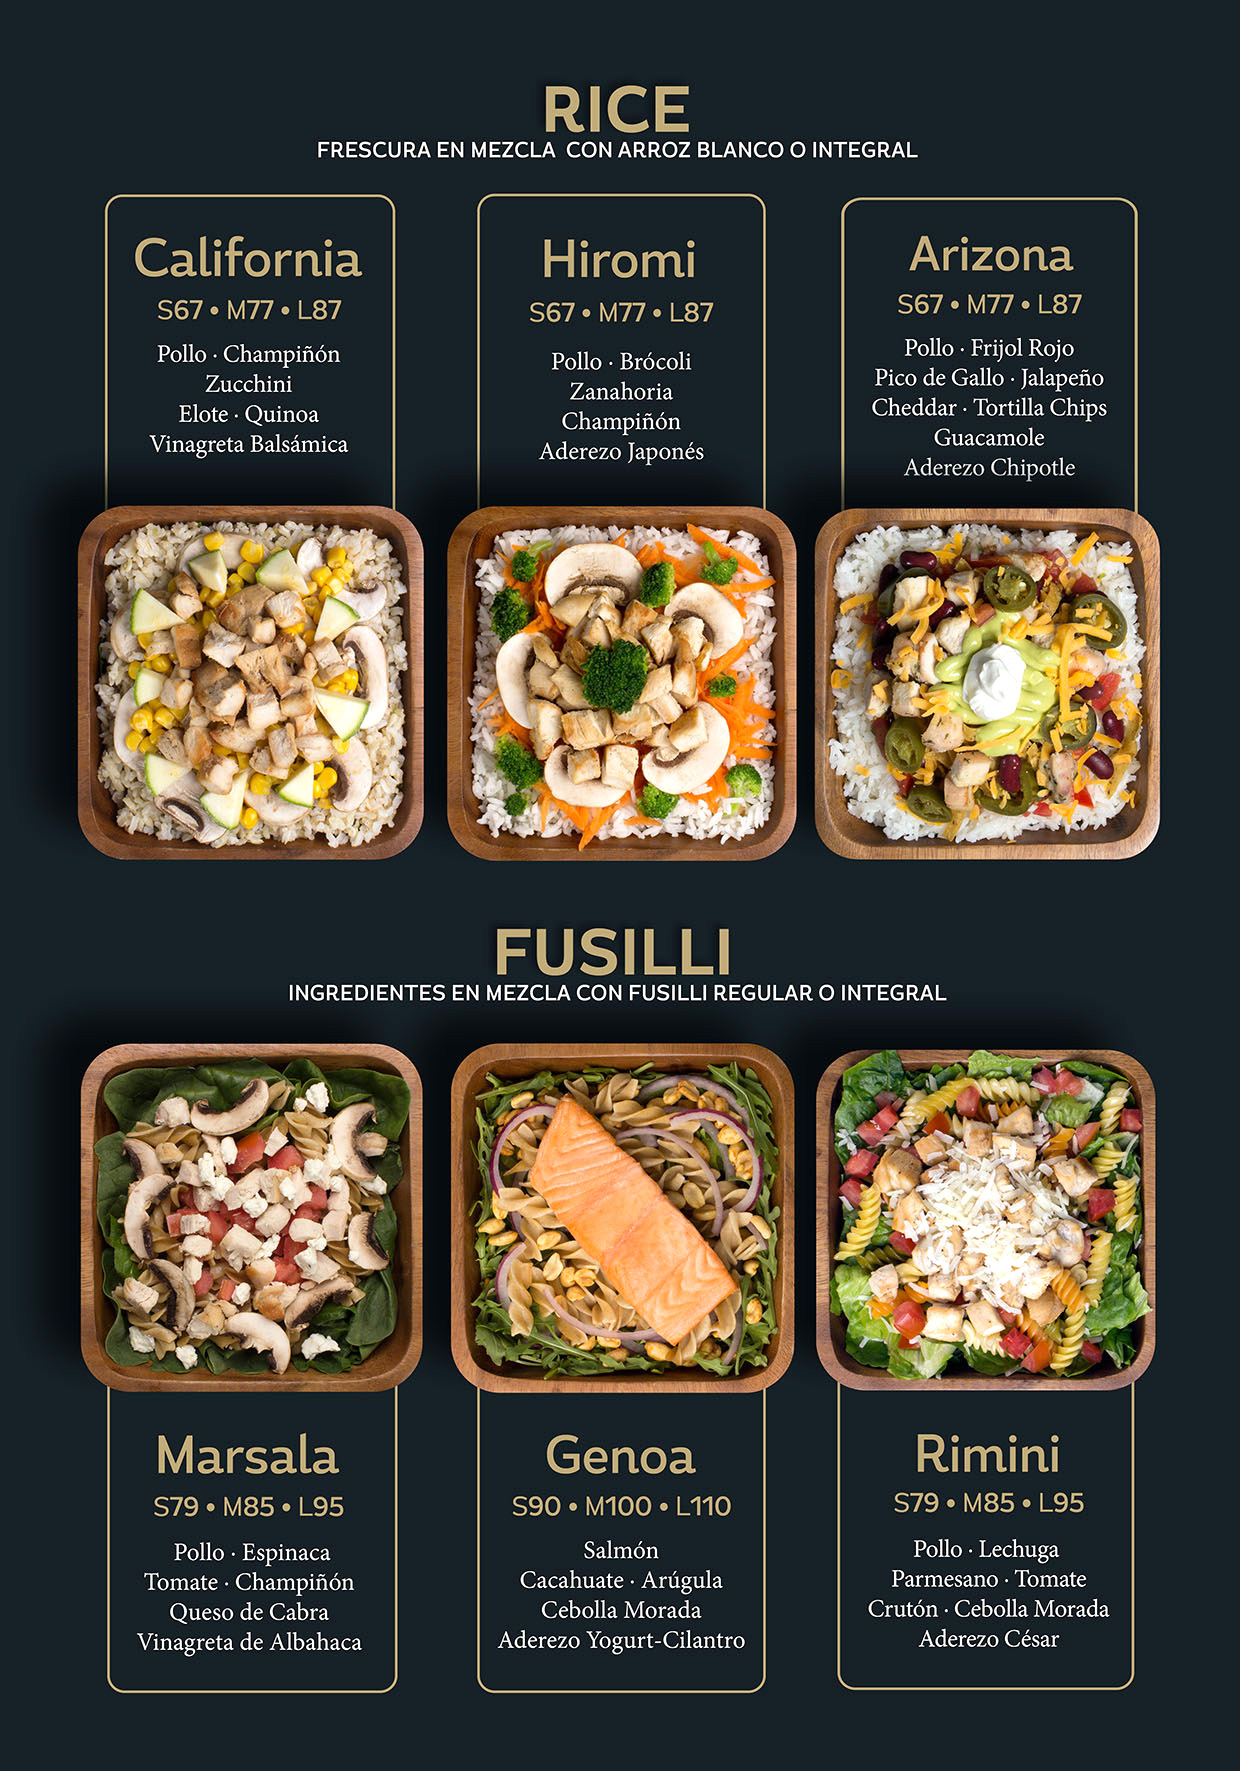 RICE-PASTA-PANEL-6-FRESHSPOT-copy.jpg